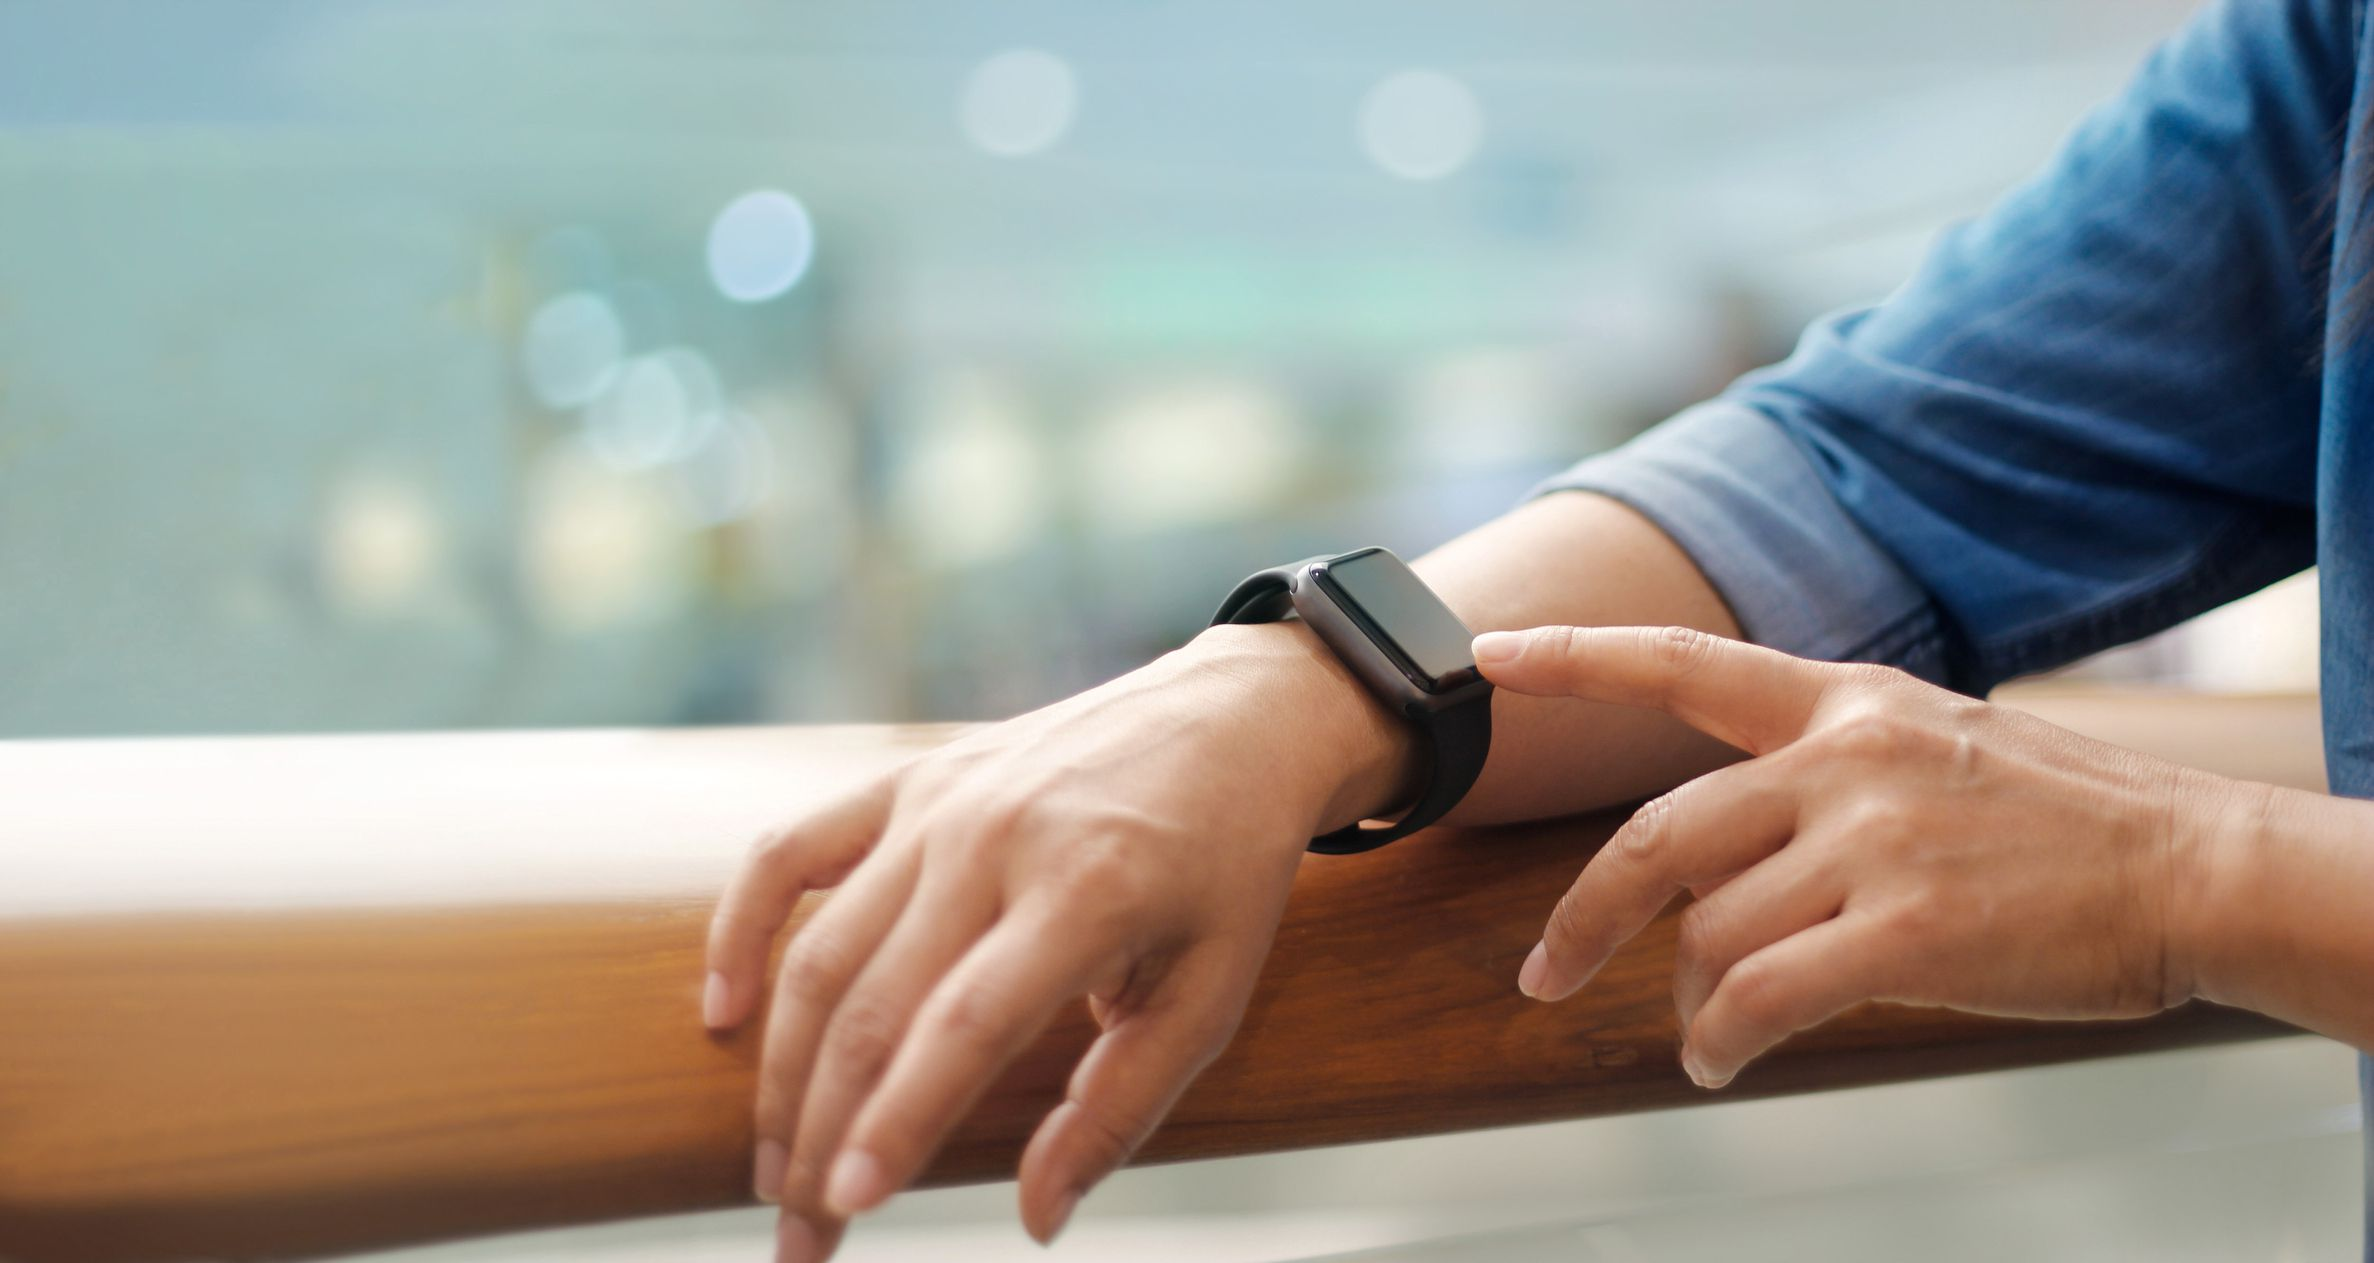 What to Know About Smart Watches